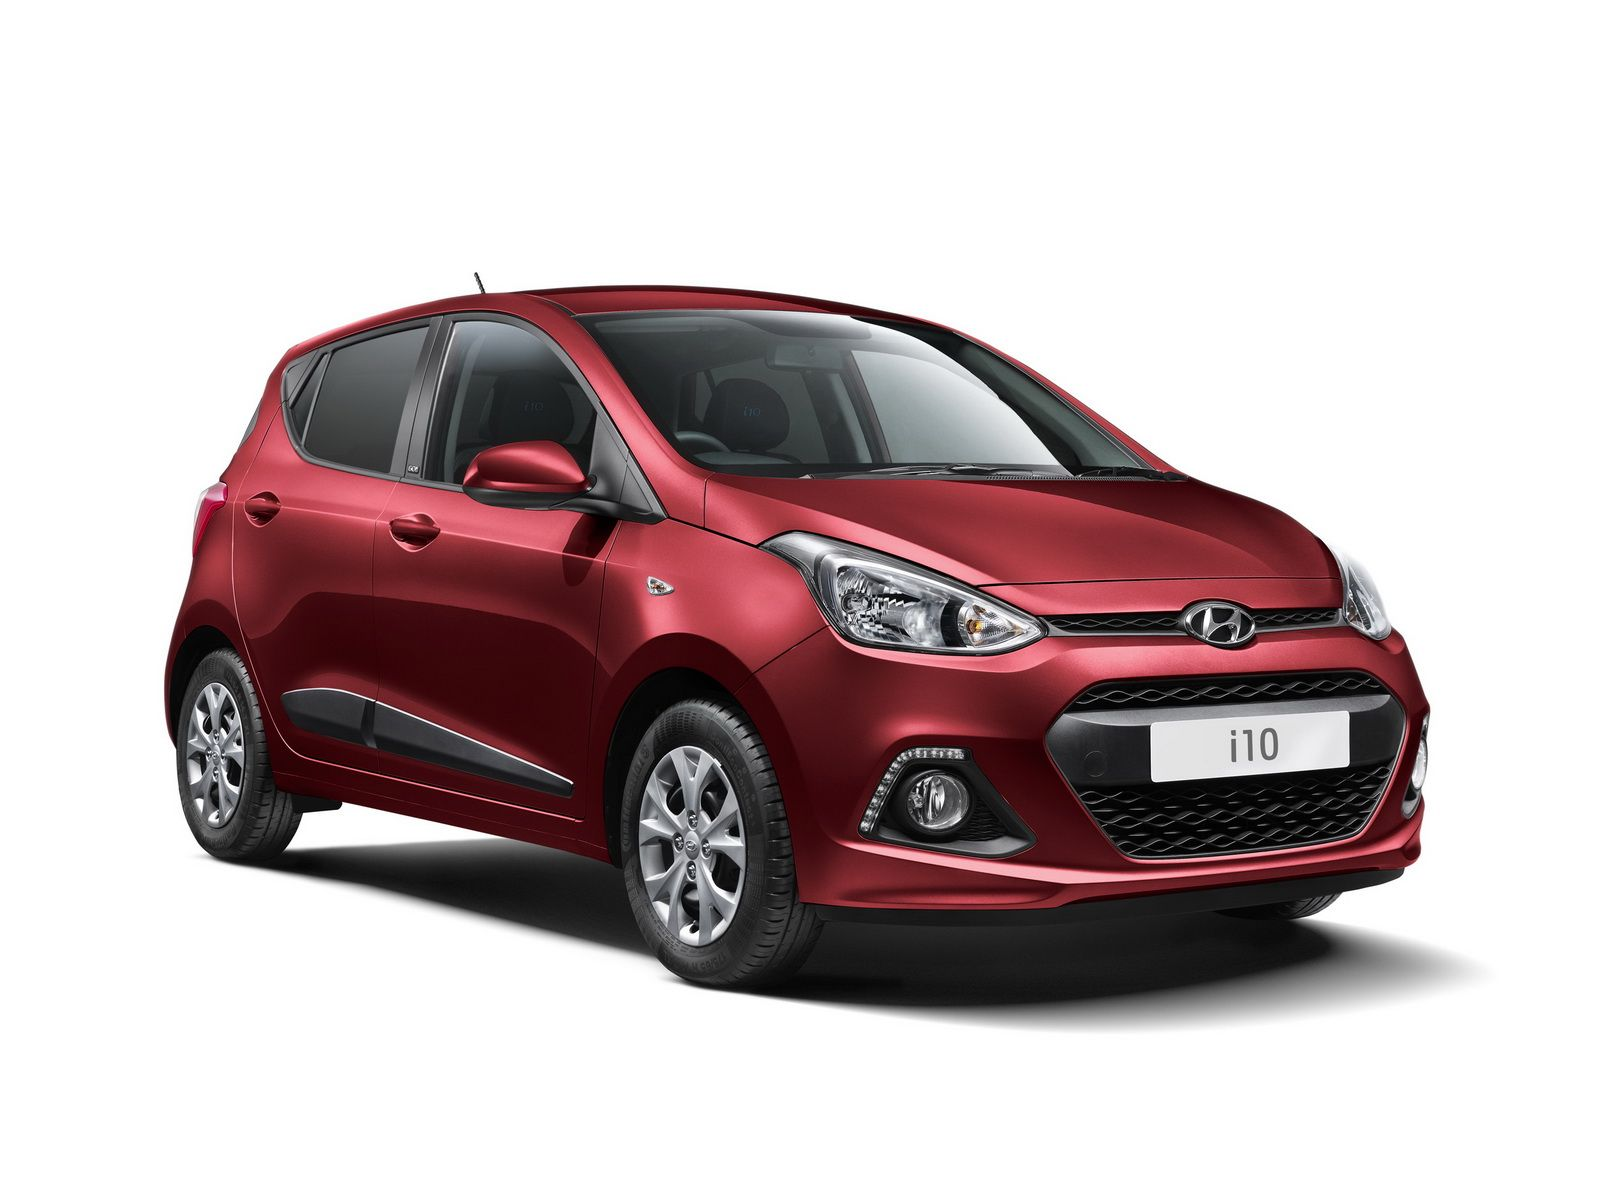 Hyundai Introduced The New I10 And I20 Go Special Editions In The